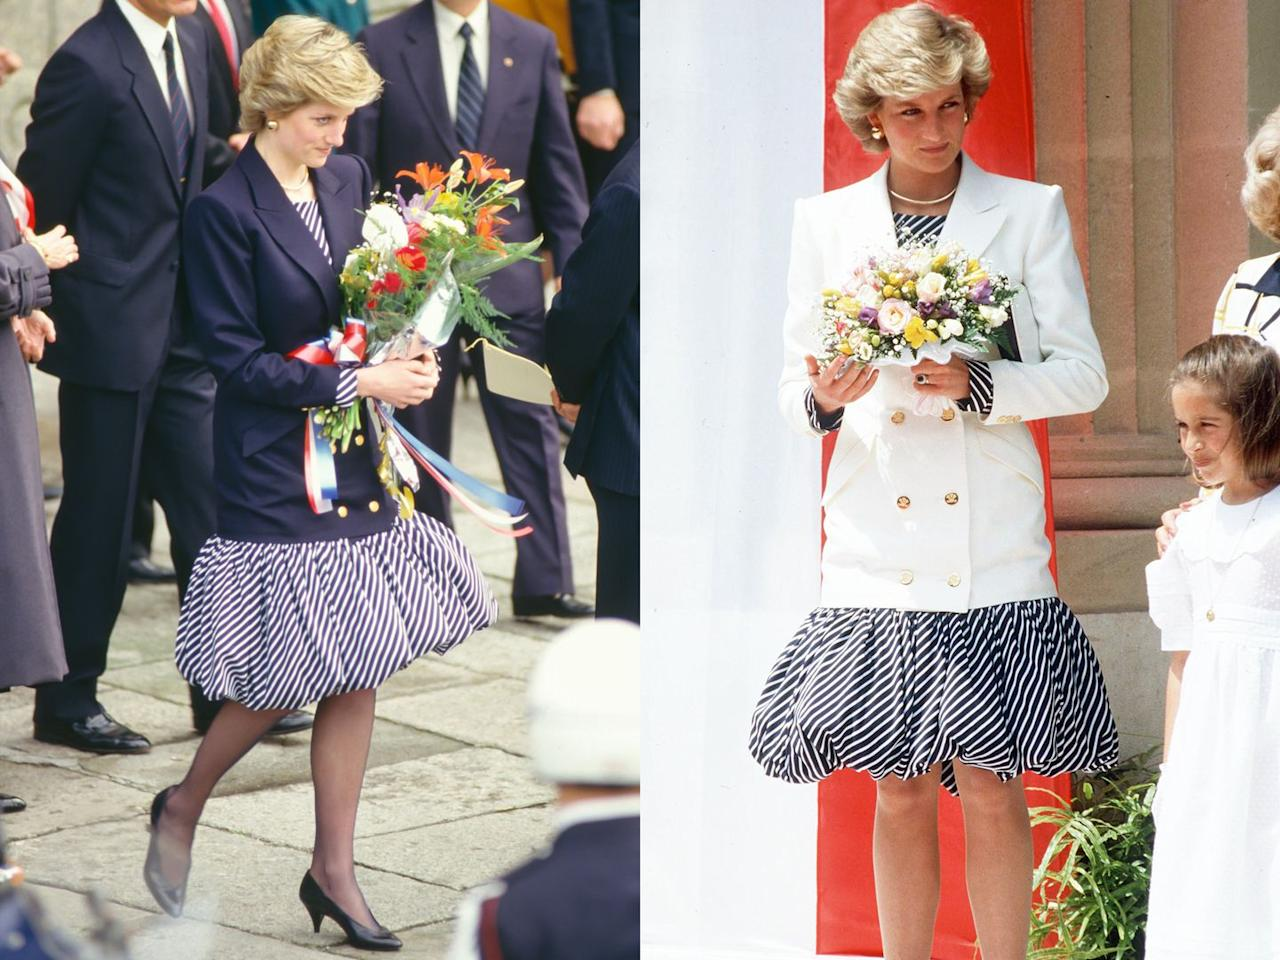 <p>Clearly, Diana brought a few of her favorite looks with her to Lisbon in 1987. The photo on the left shows her on the official visit, and in the picture on the right, she's in Cannes just a few months later, wearing the same skirt, just styled a bit differently.</p>